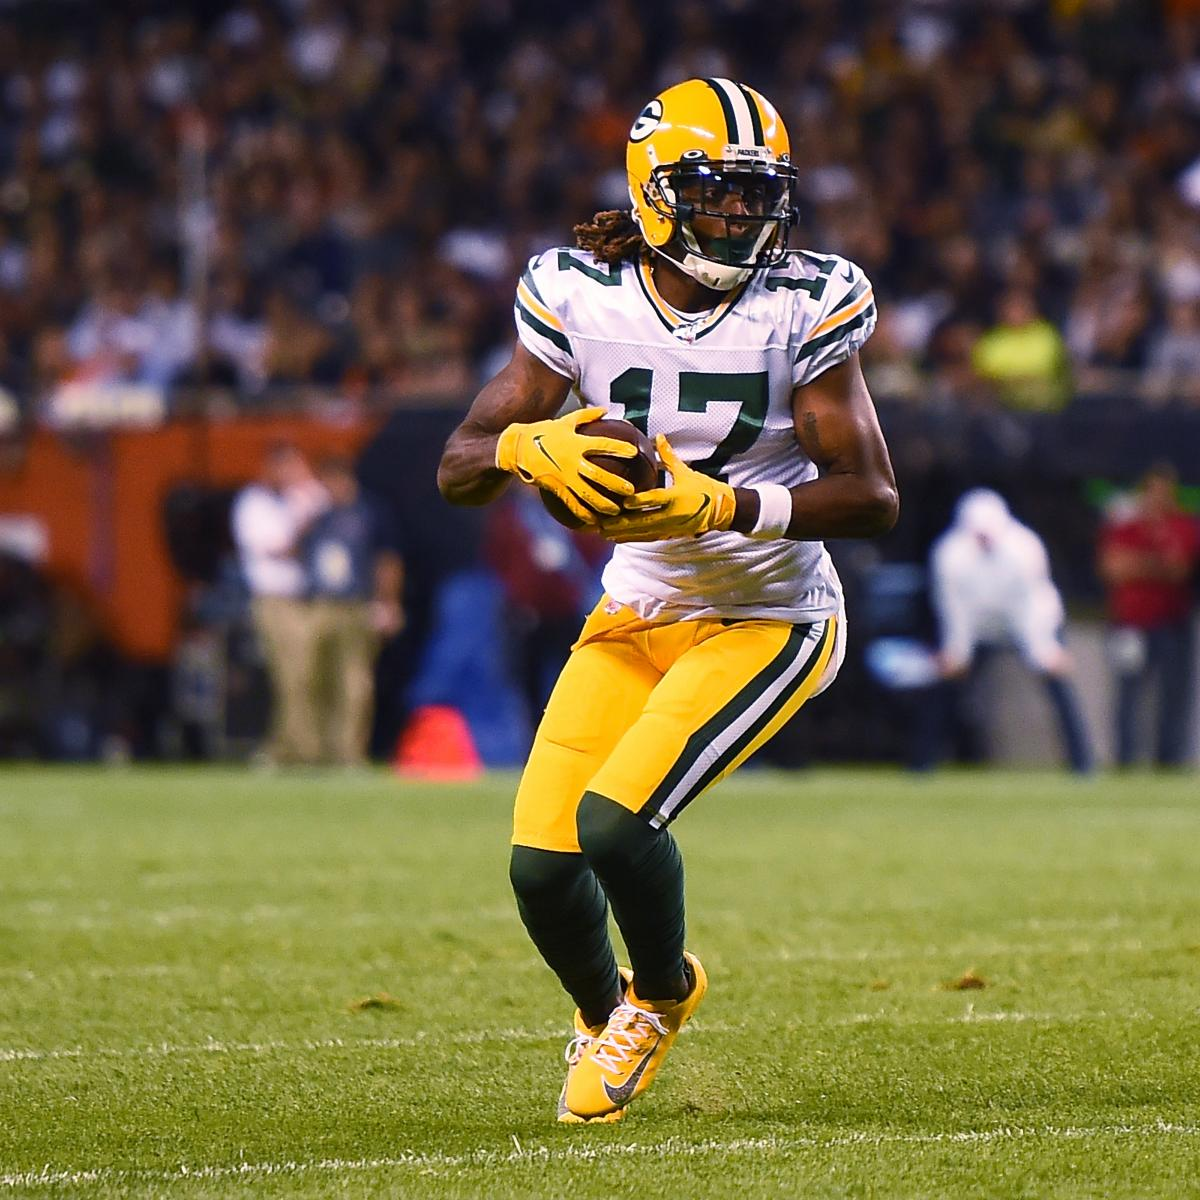 Packers' Davante Adams Ruled Out Vs. Raiders With Turf Toe